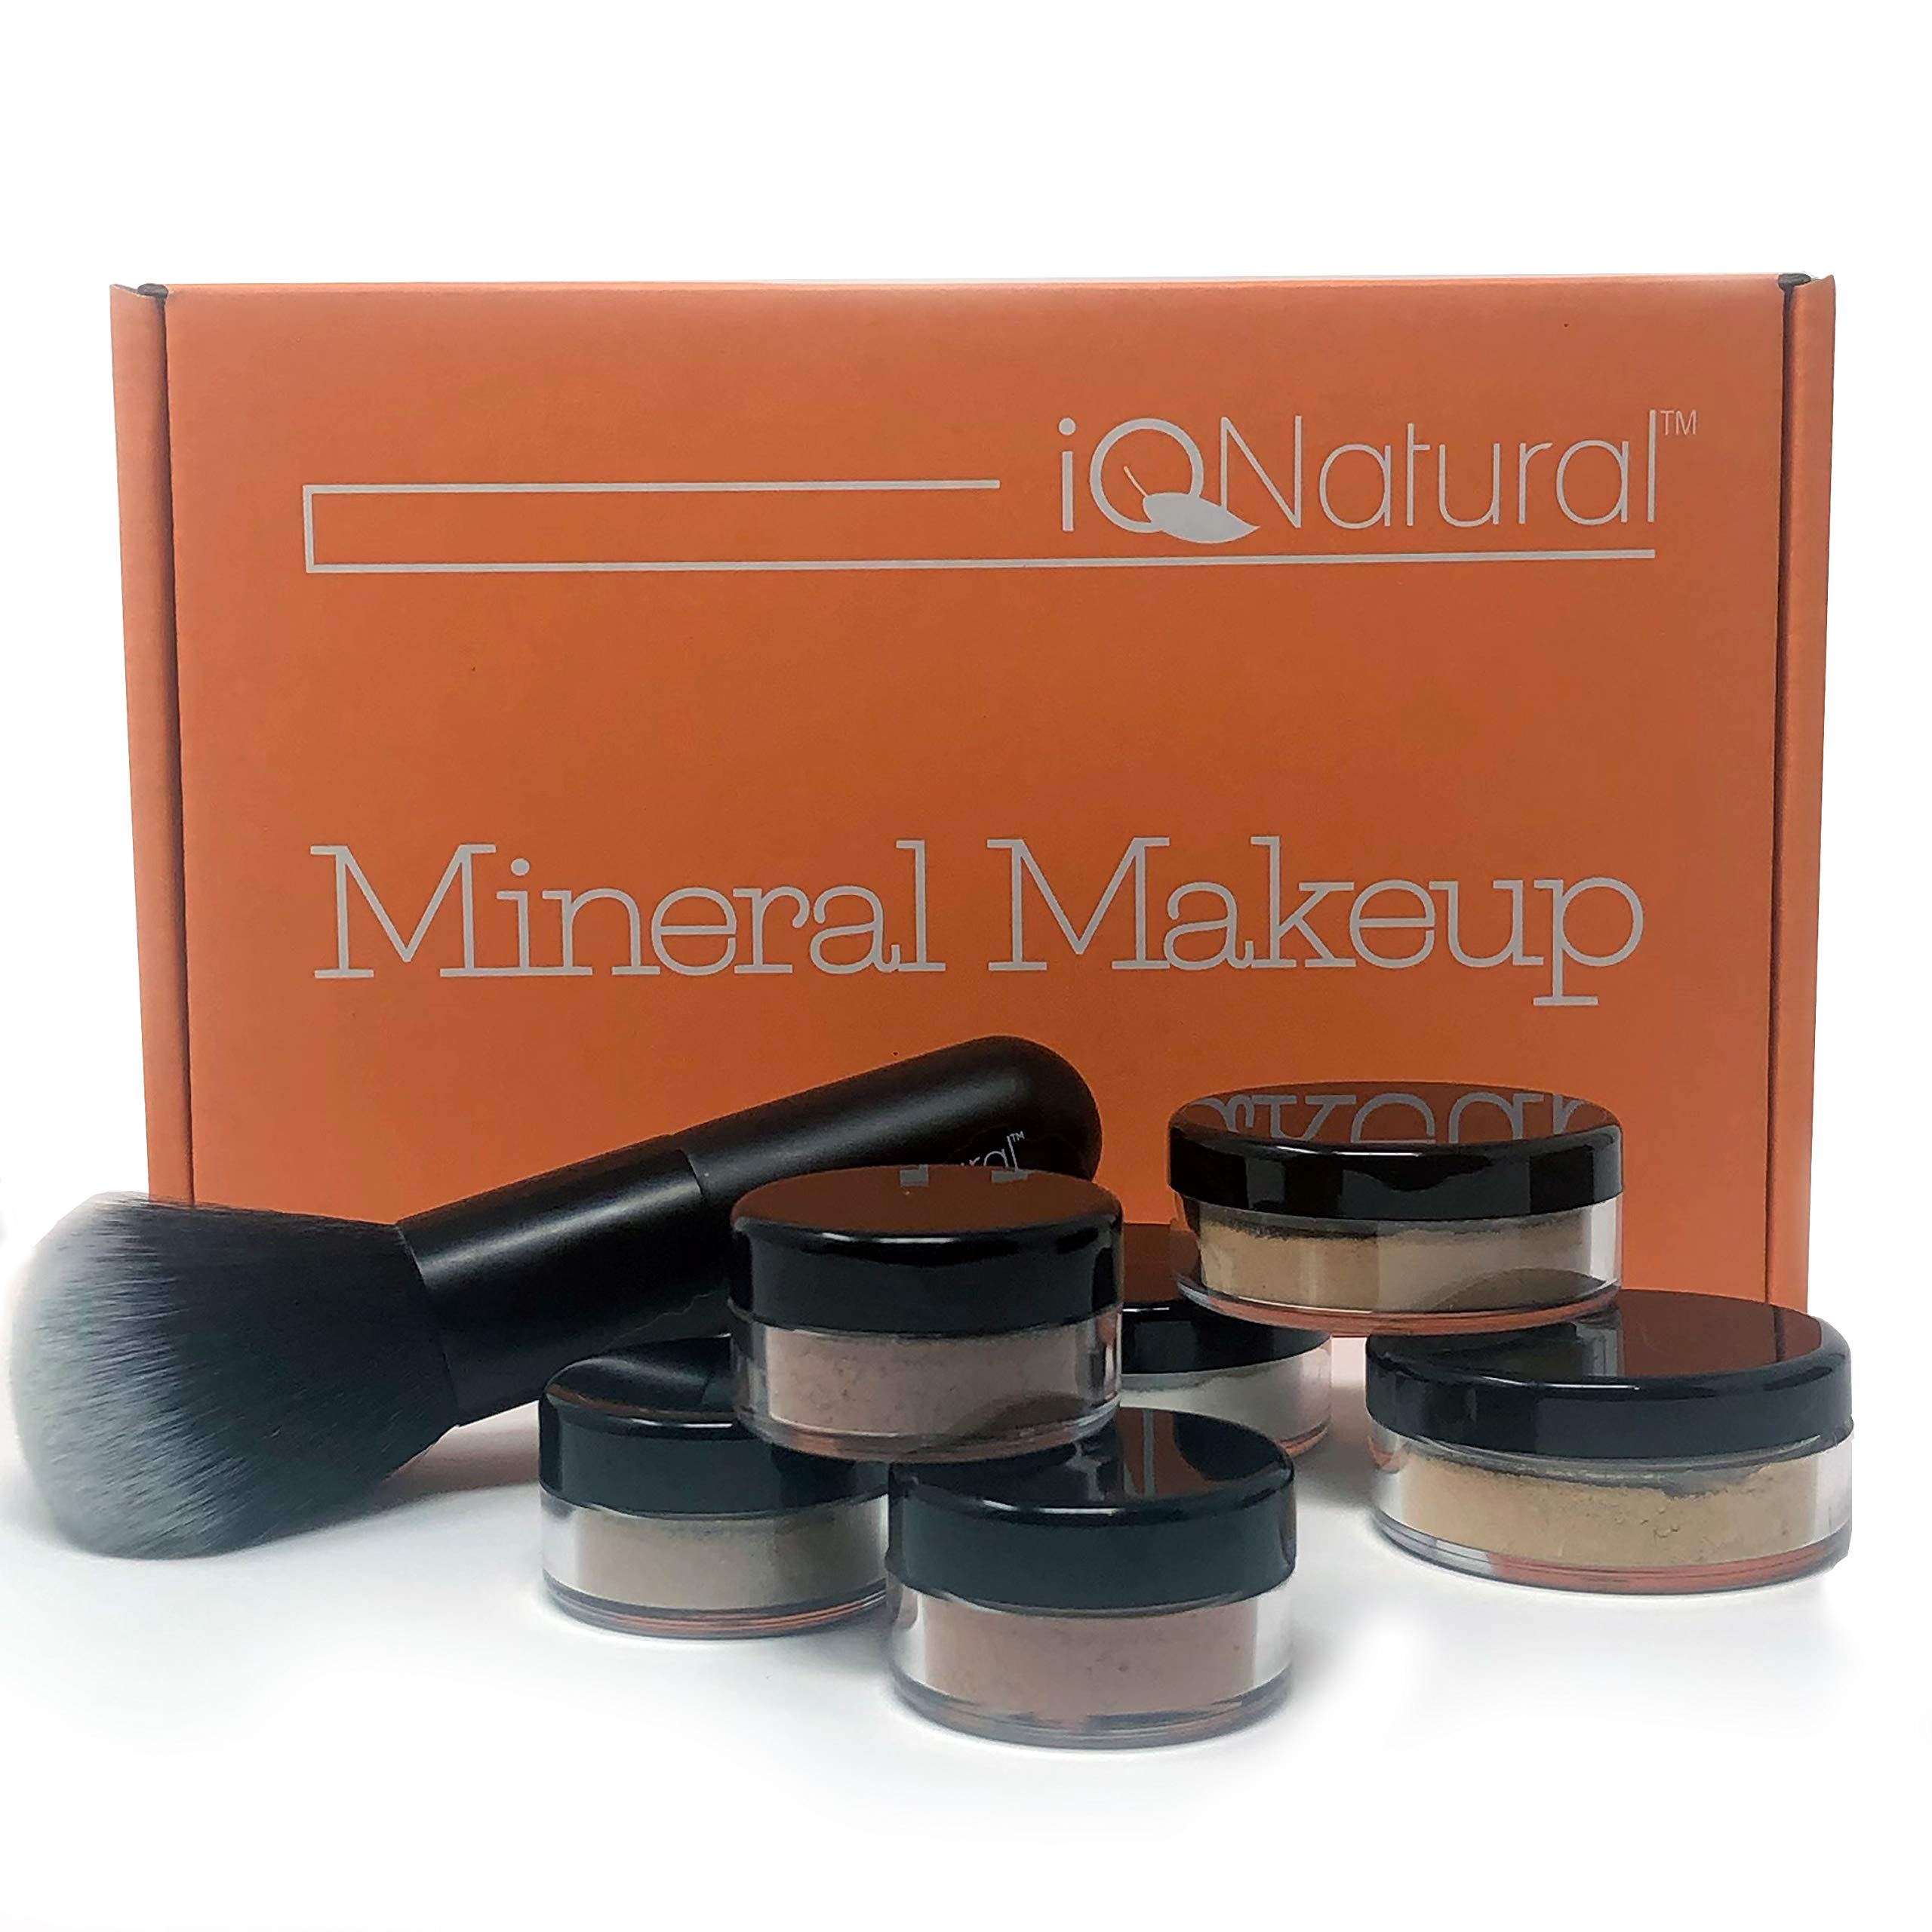 IQ Natural's Large Mineral Makeup Kit | Concealer, Bronzer, Eye Shadow, Setting Powder, 2 Full Size Mineral Foundation | Create A Natural Flawless Look - 8pc Shade[FAIR]